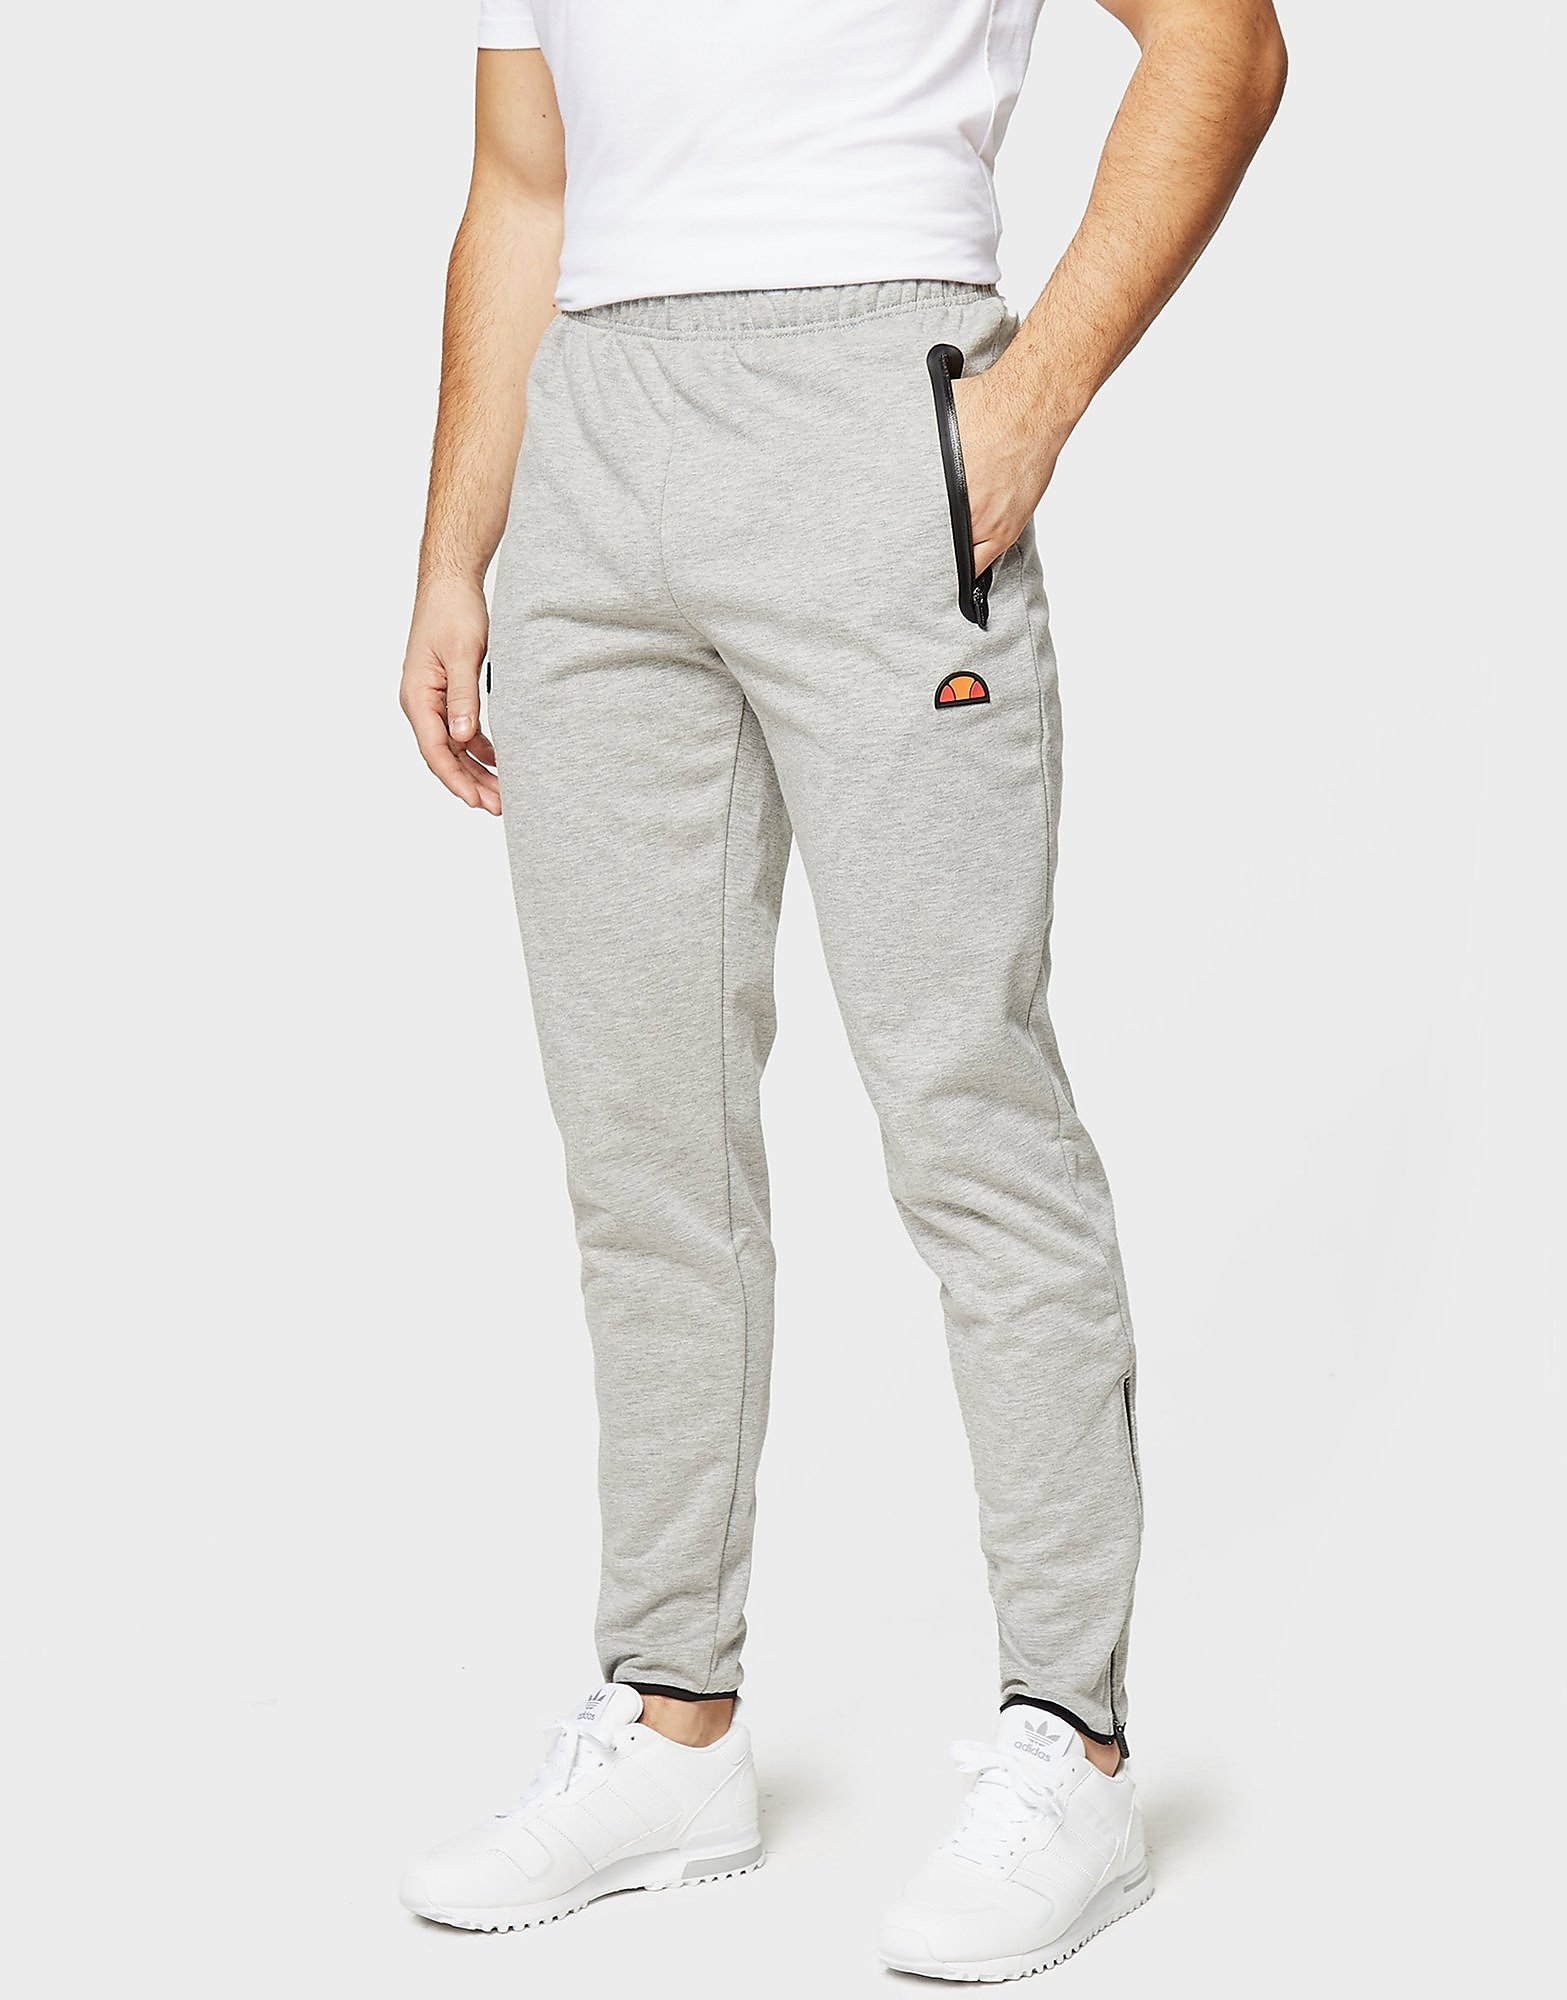 Ellesse Faraday Slim Trackpants